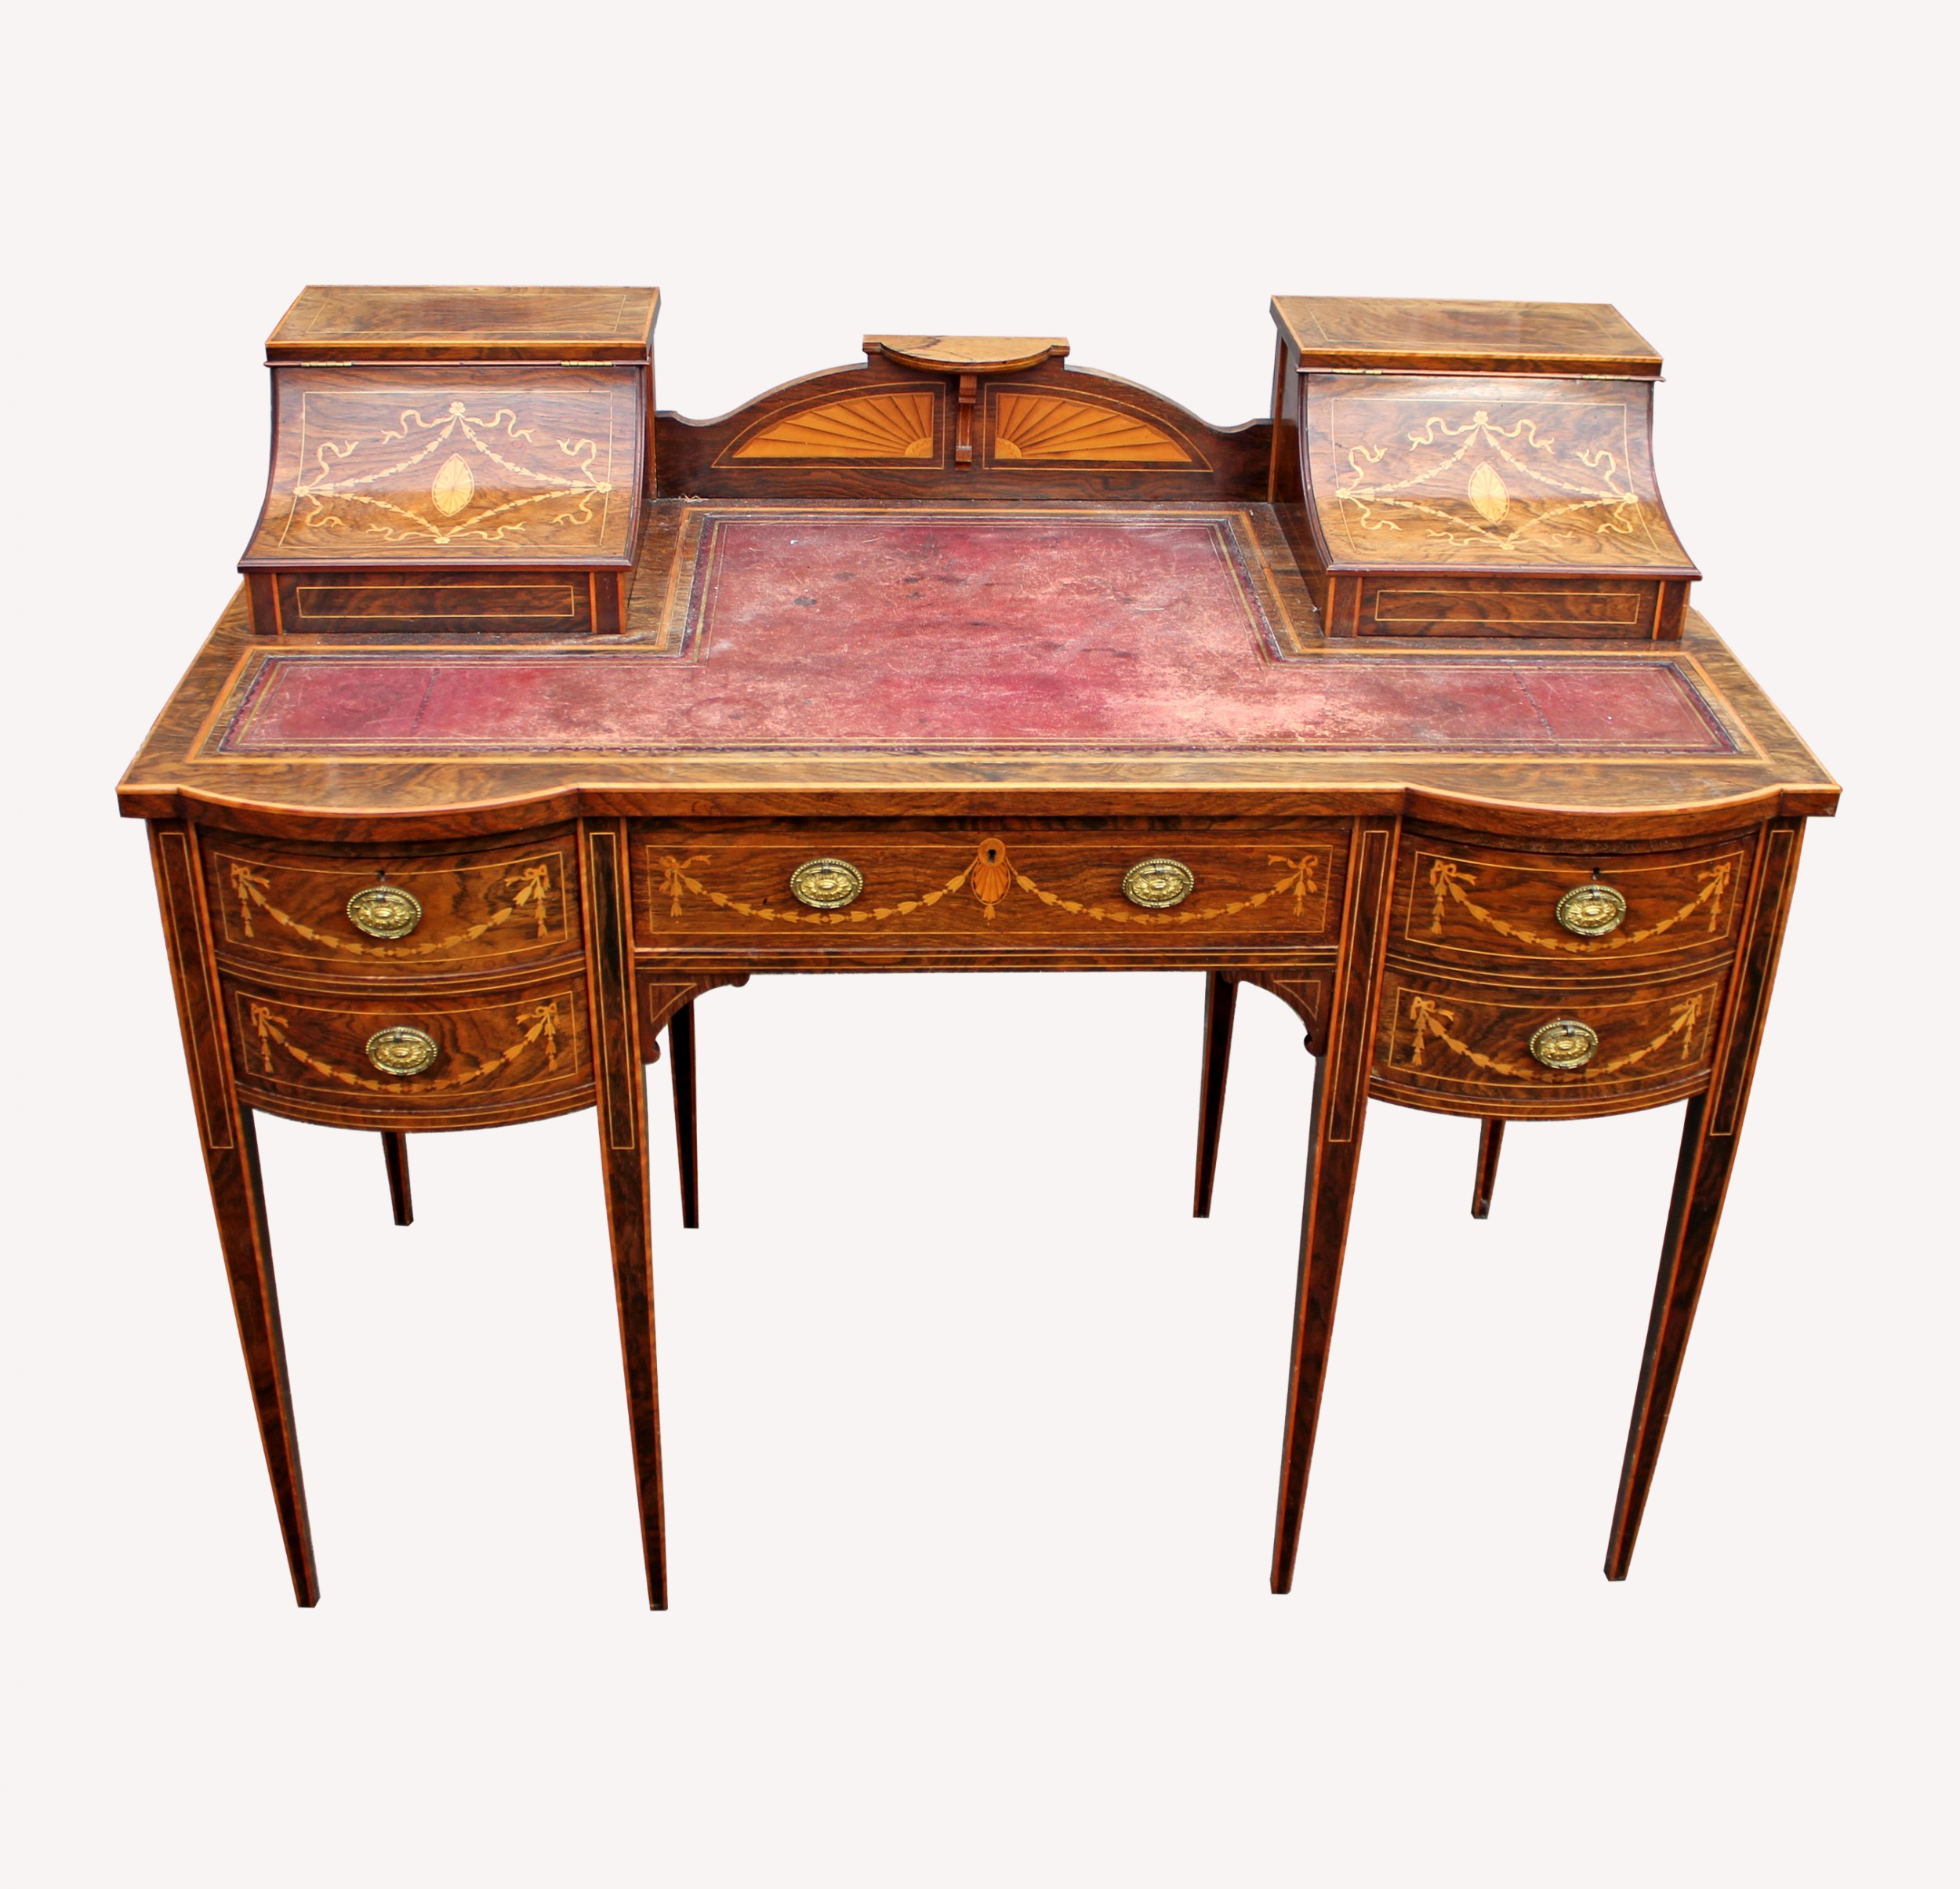 a lovely english rosewood satinwood marquetry inlaid writing desk